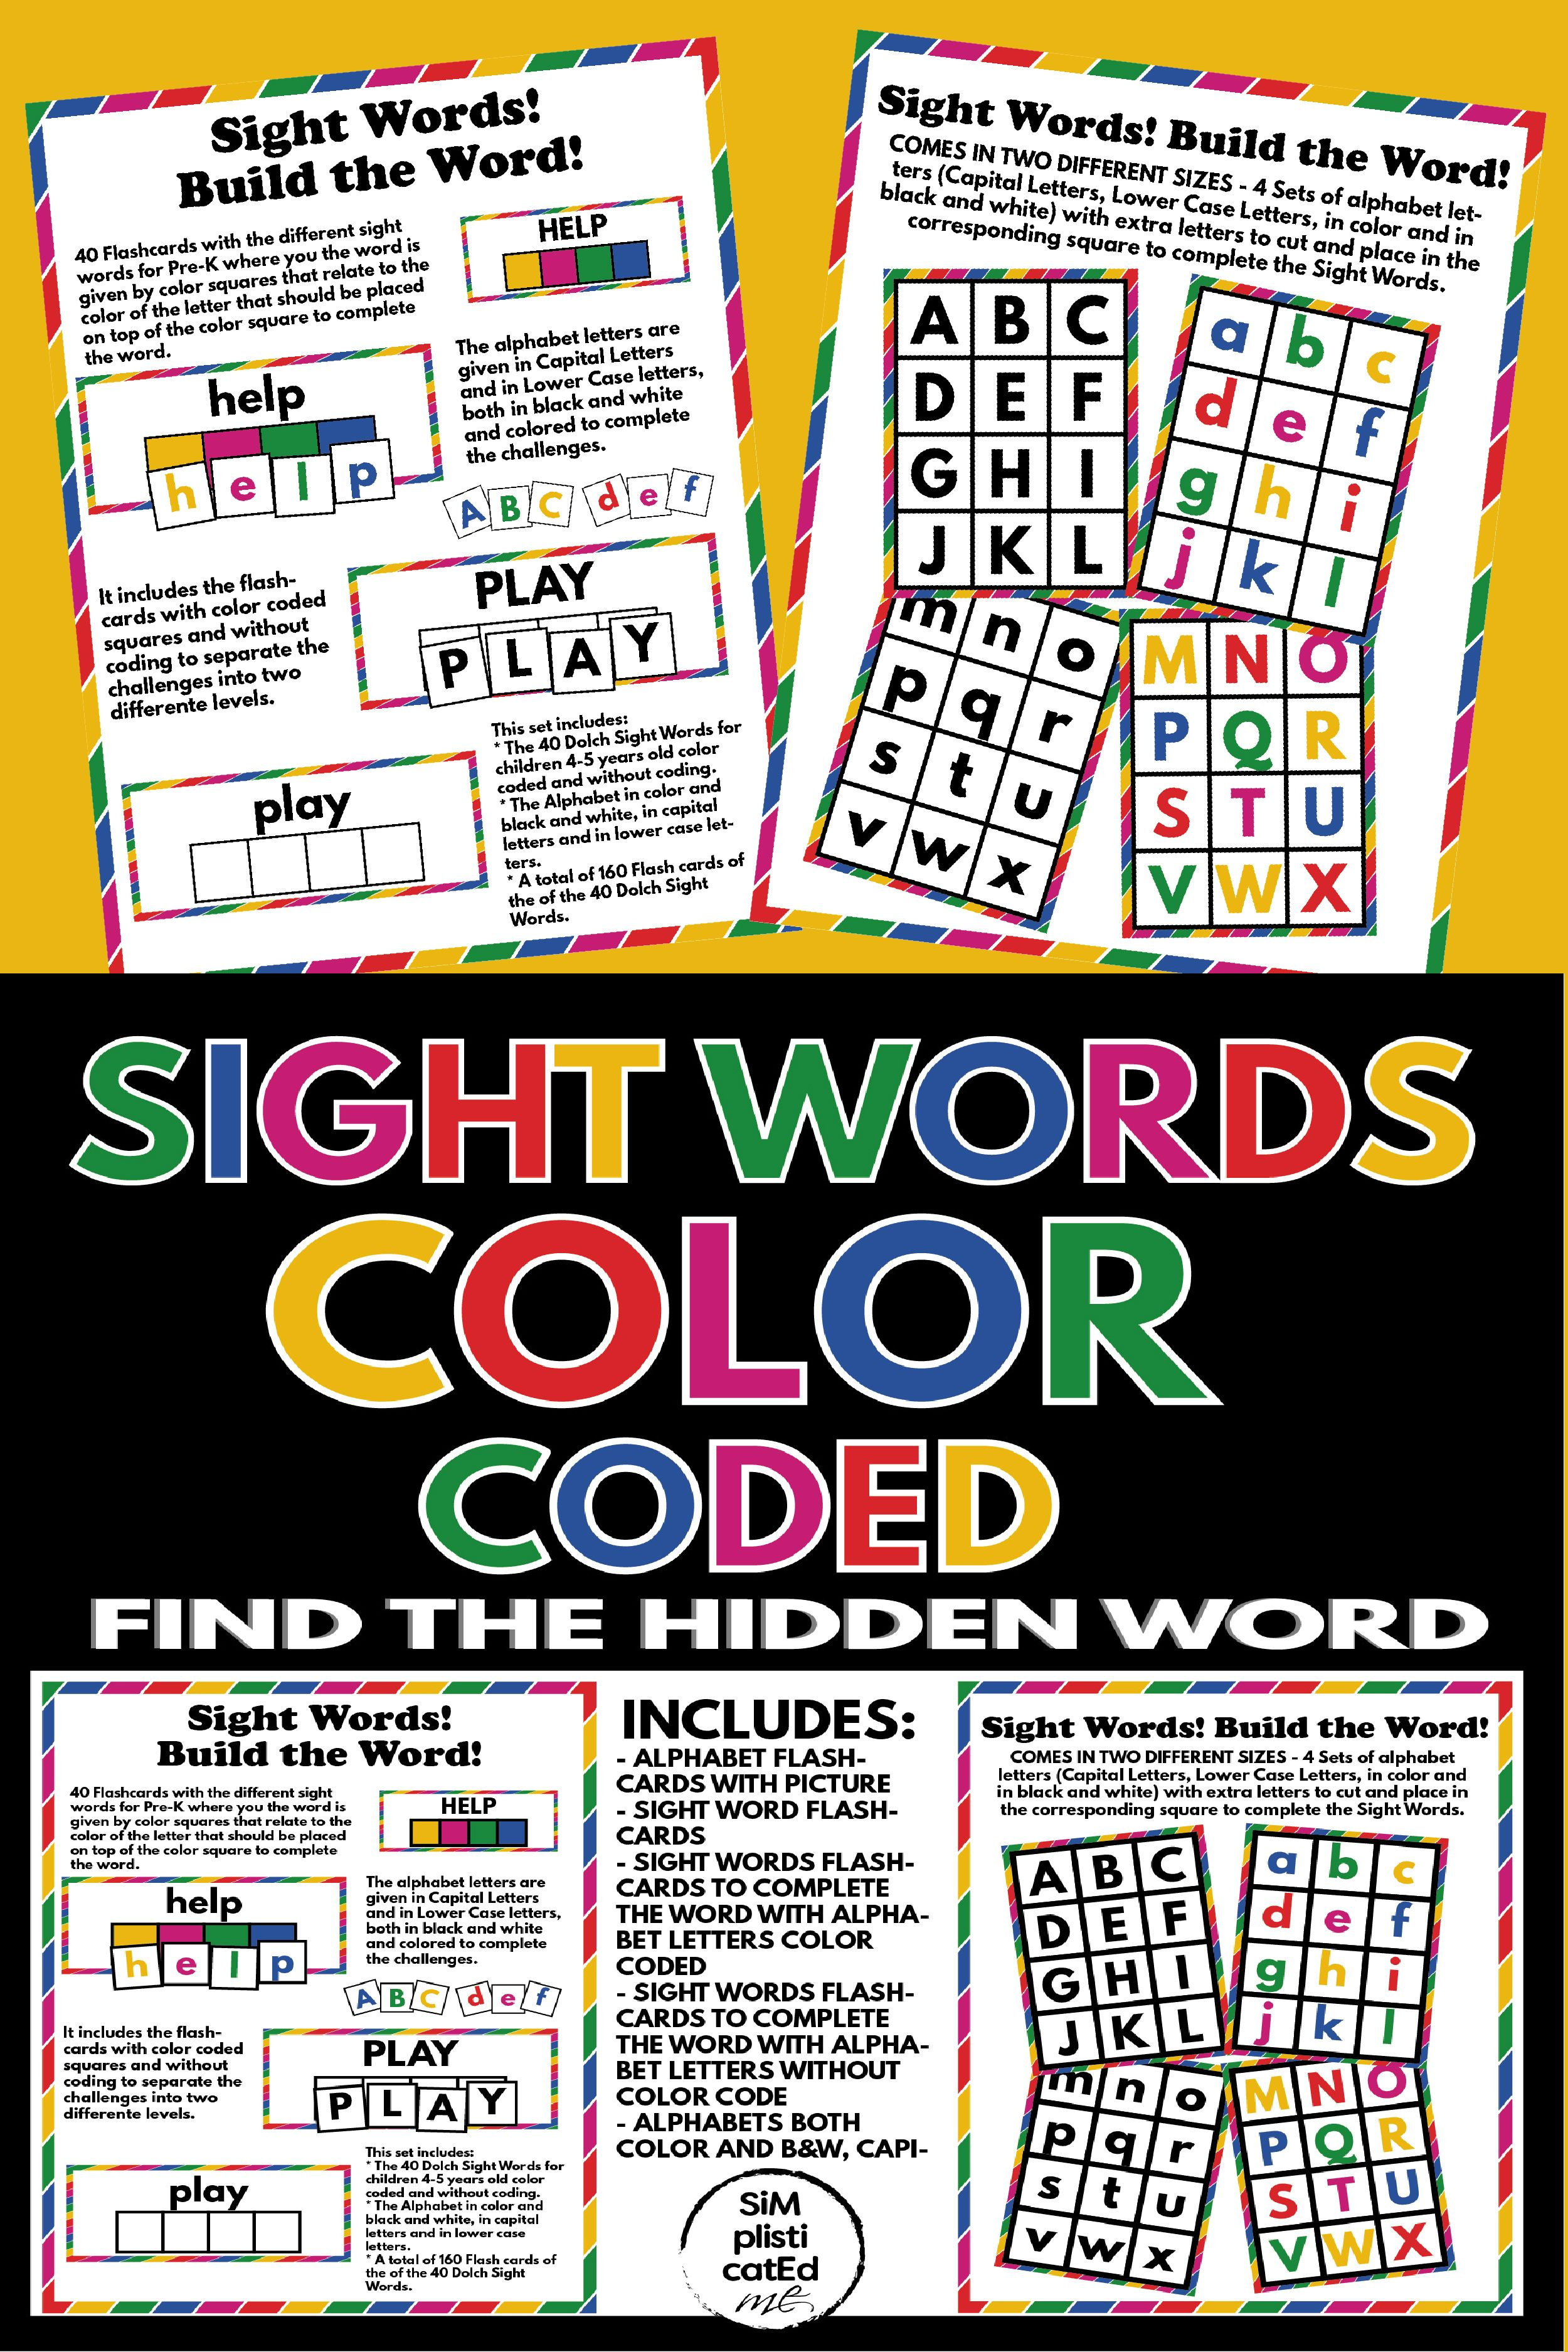 Sight Words Color Coded